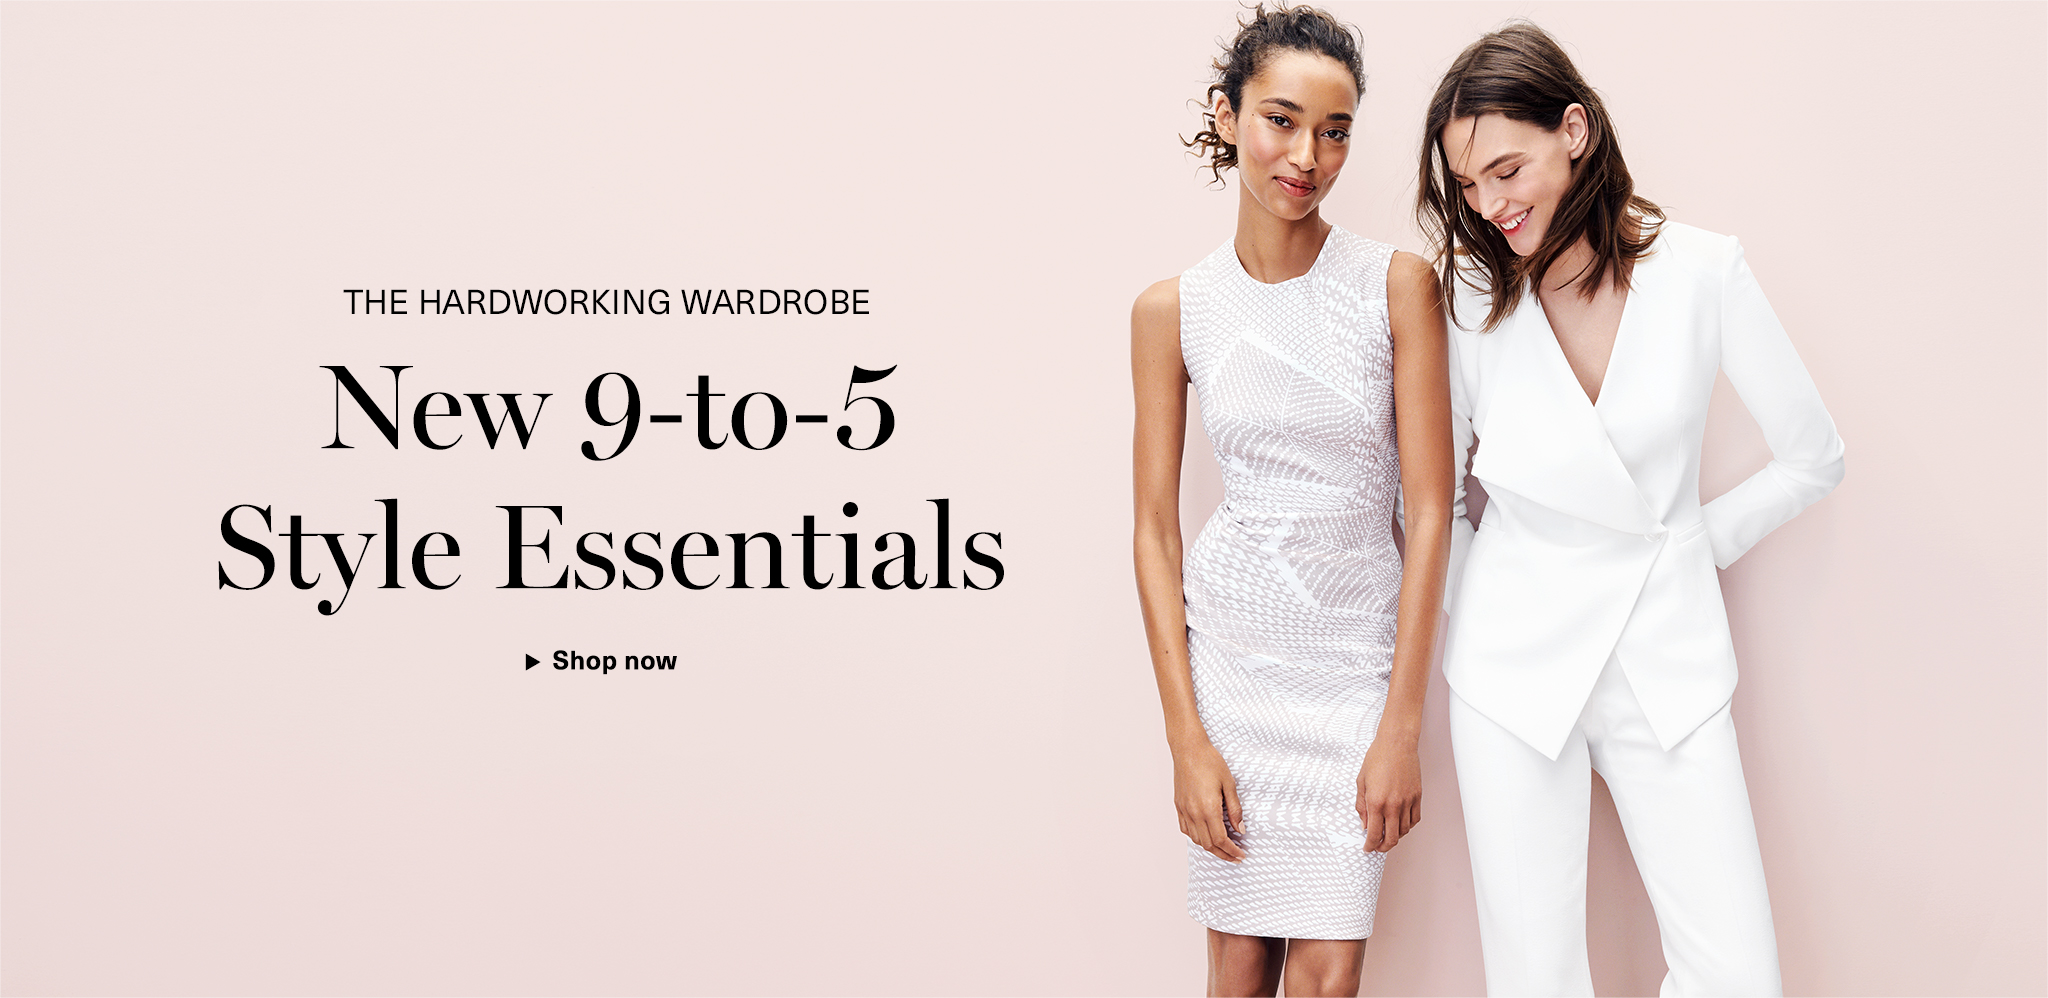 New 9-to-5 Style Essentials